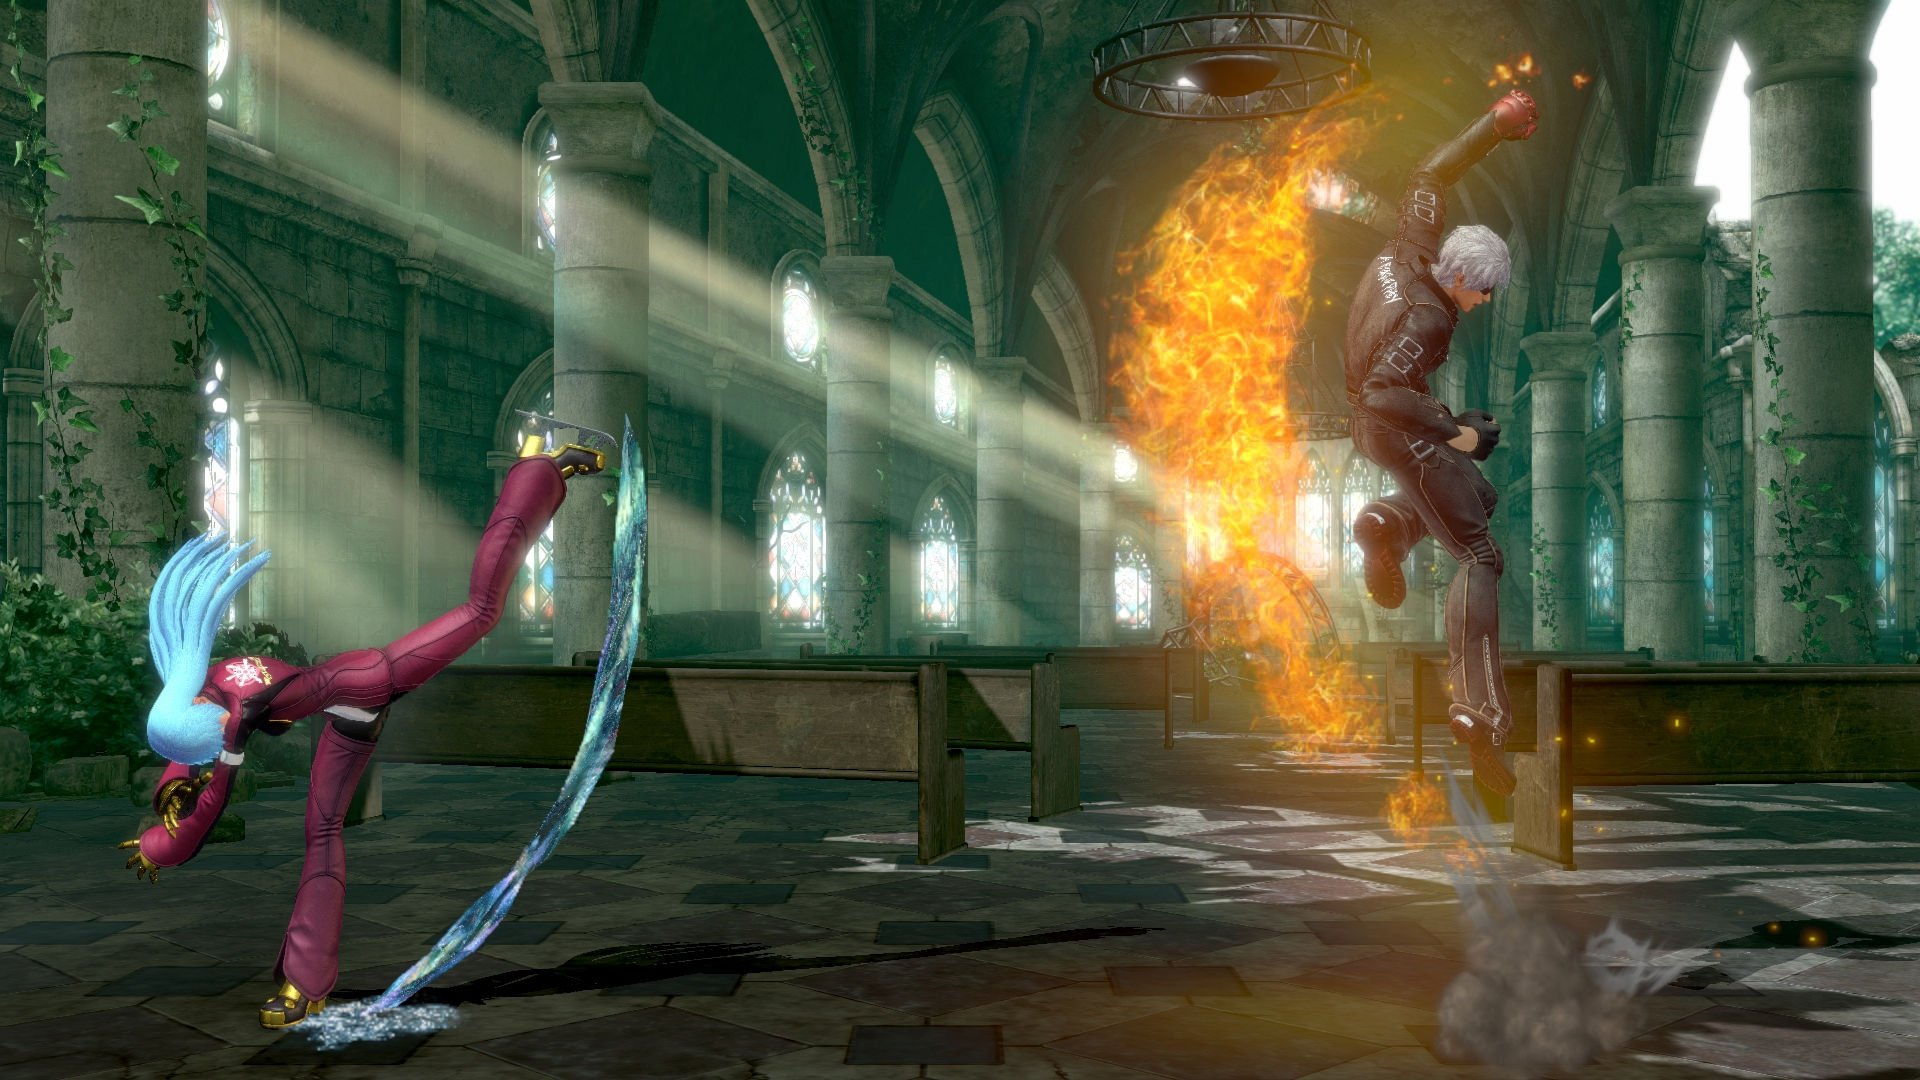 king_of_fighters_xiv-3371185.jpg